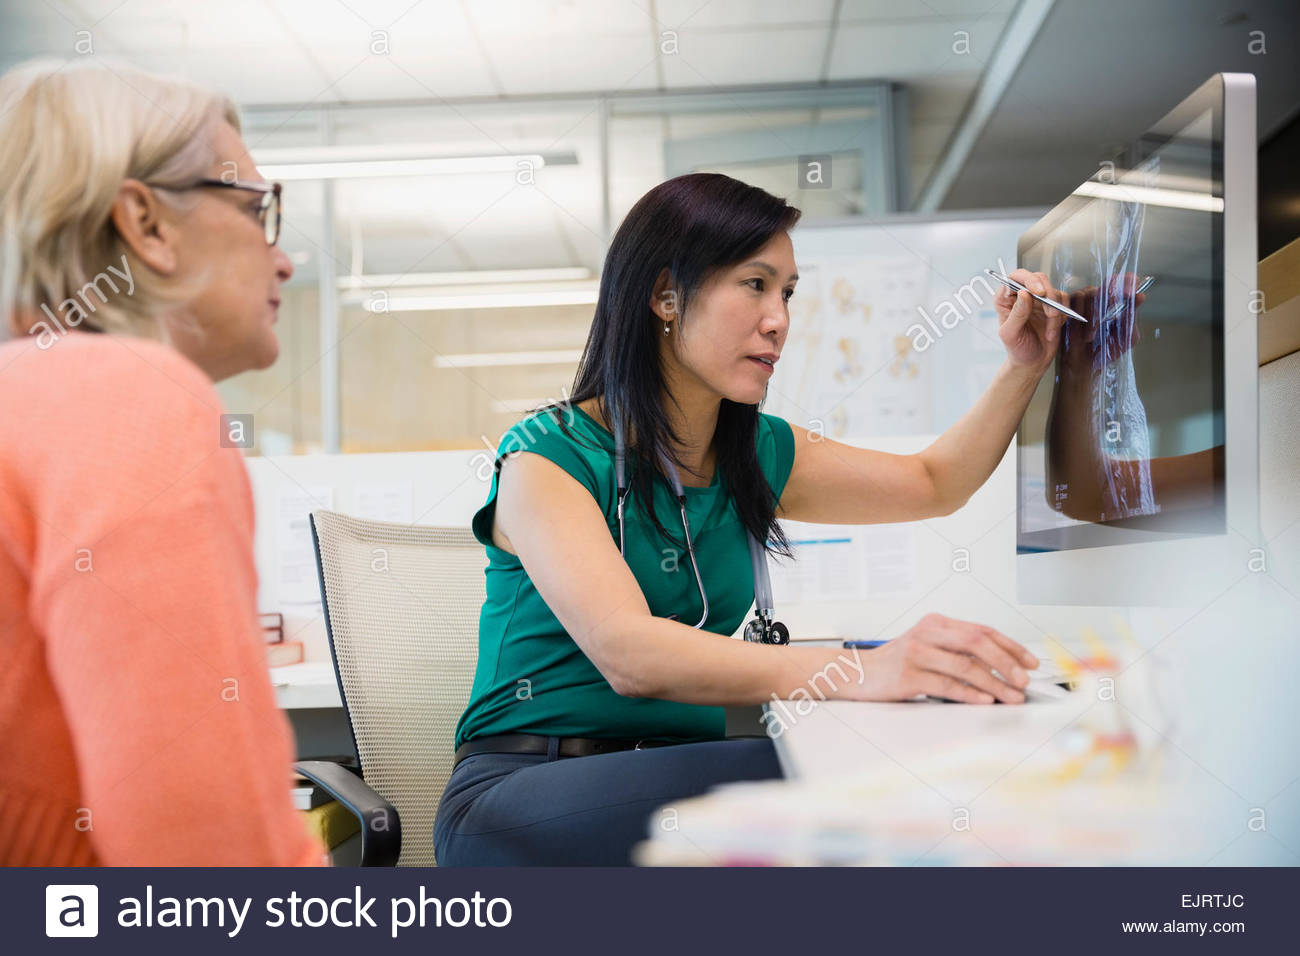 Doctor reviewing x-rays on computer with patient - Stock Image